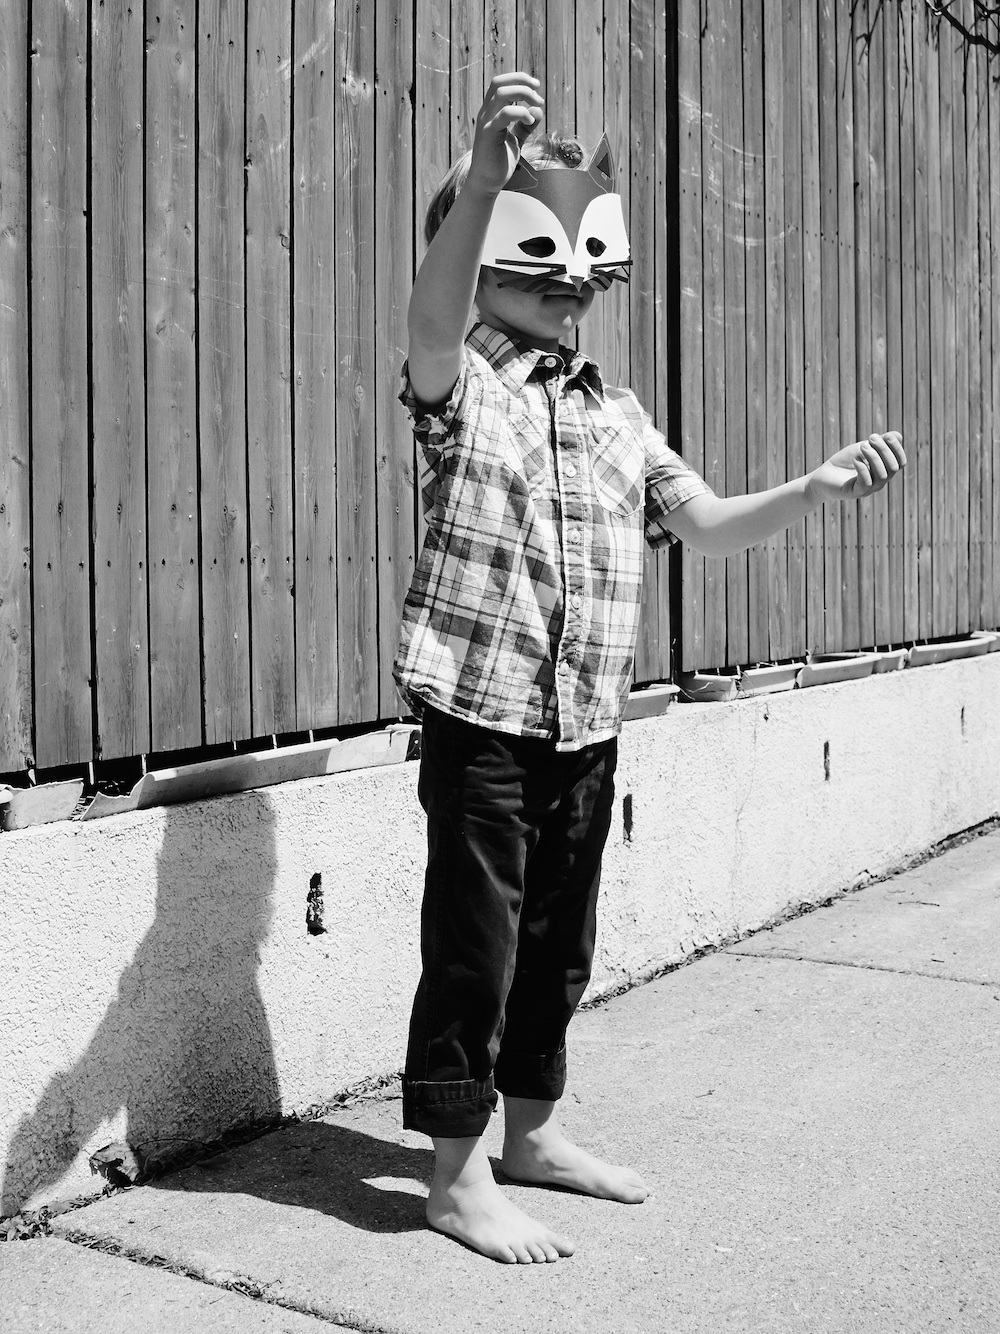 Fox-mask-kids-black-white.jpg